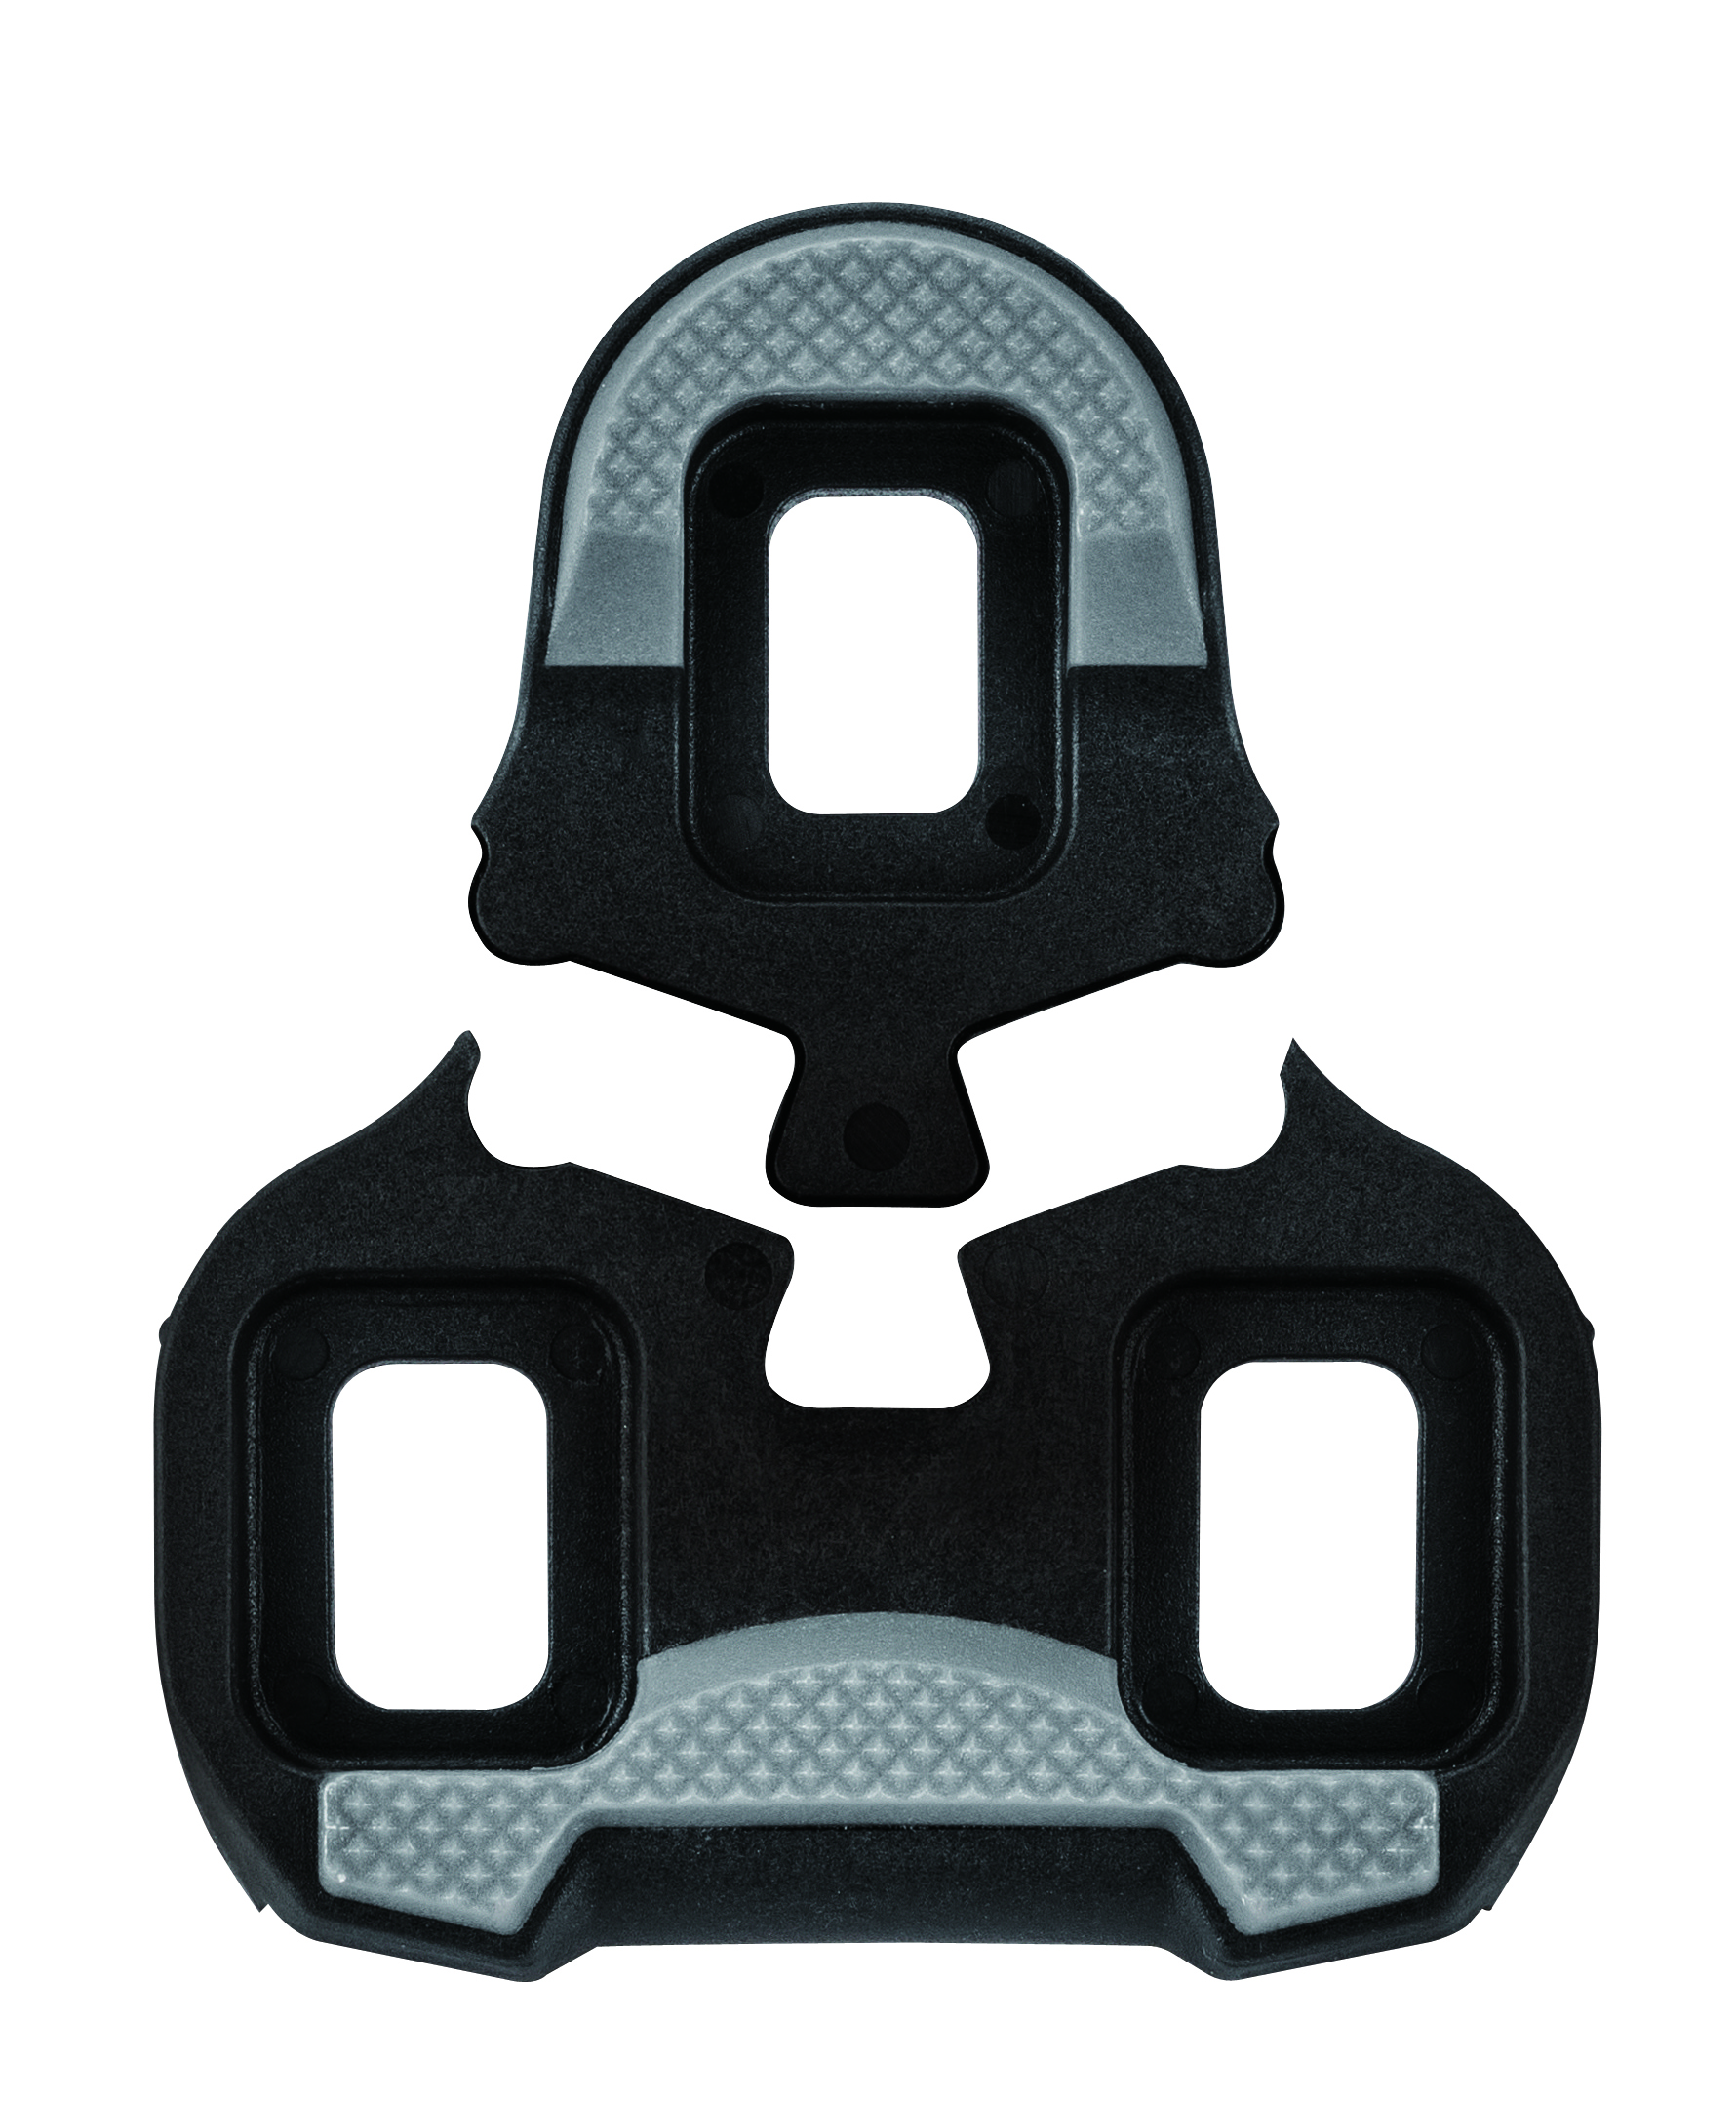 VP Components Perfect Placement Road Bike Cleats